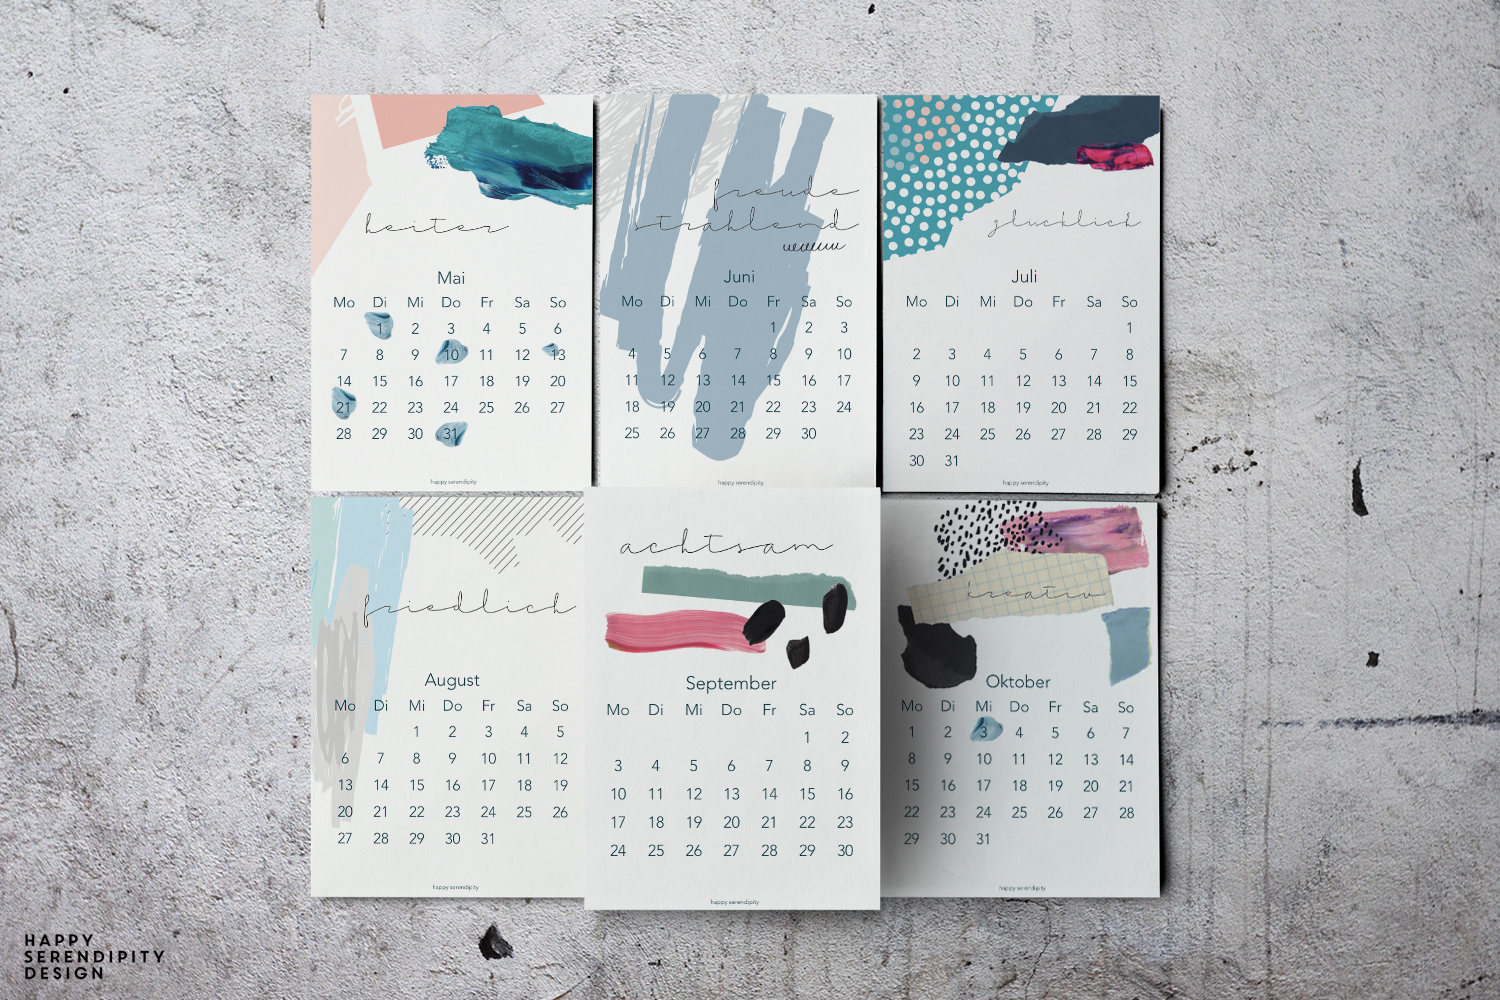 happy serendipity bildkalender 2018 - freebie download